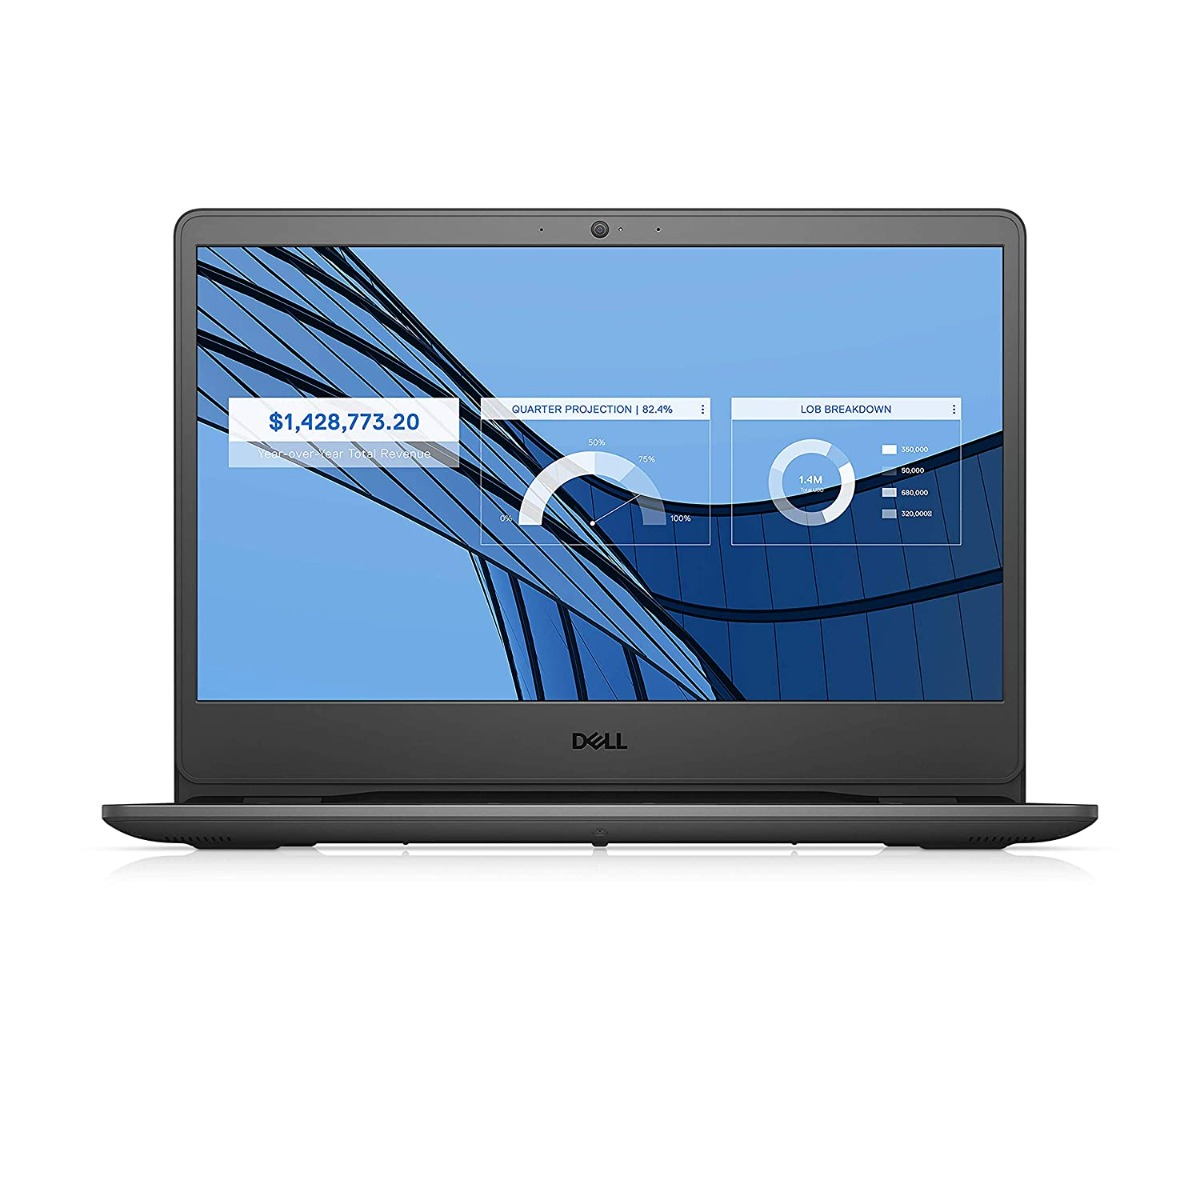 Dell Vostro 3401 14inch FHD Anti Glare 2 Side Narrow Border Display Laptop (10th gen i3-1005G1 / 4GB / 1TB / Integrated Graphics/ Win 10 + MSO/ Black)